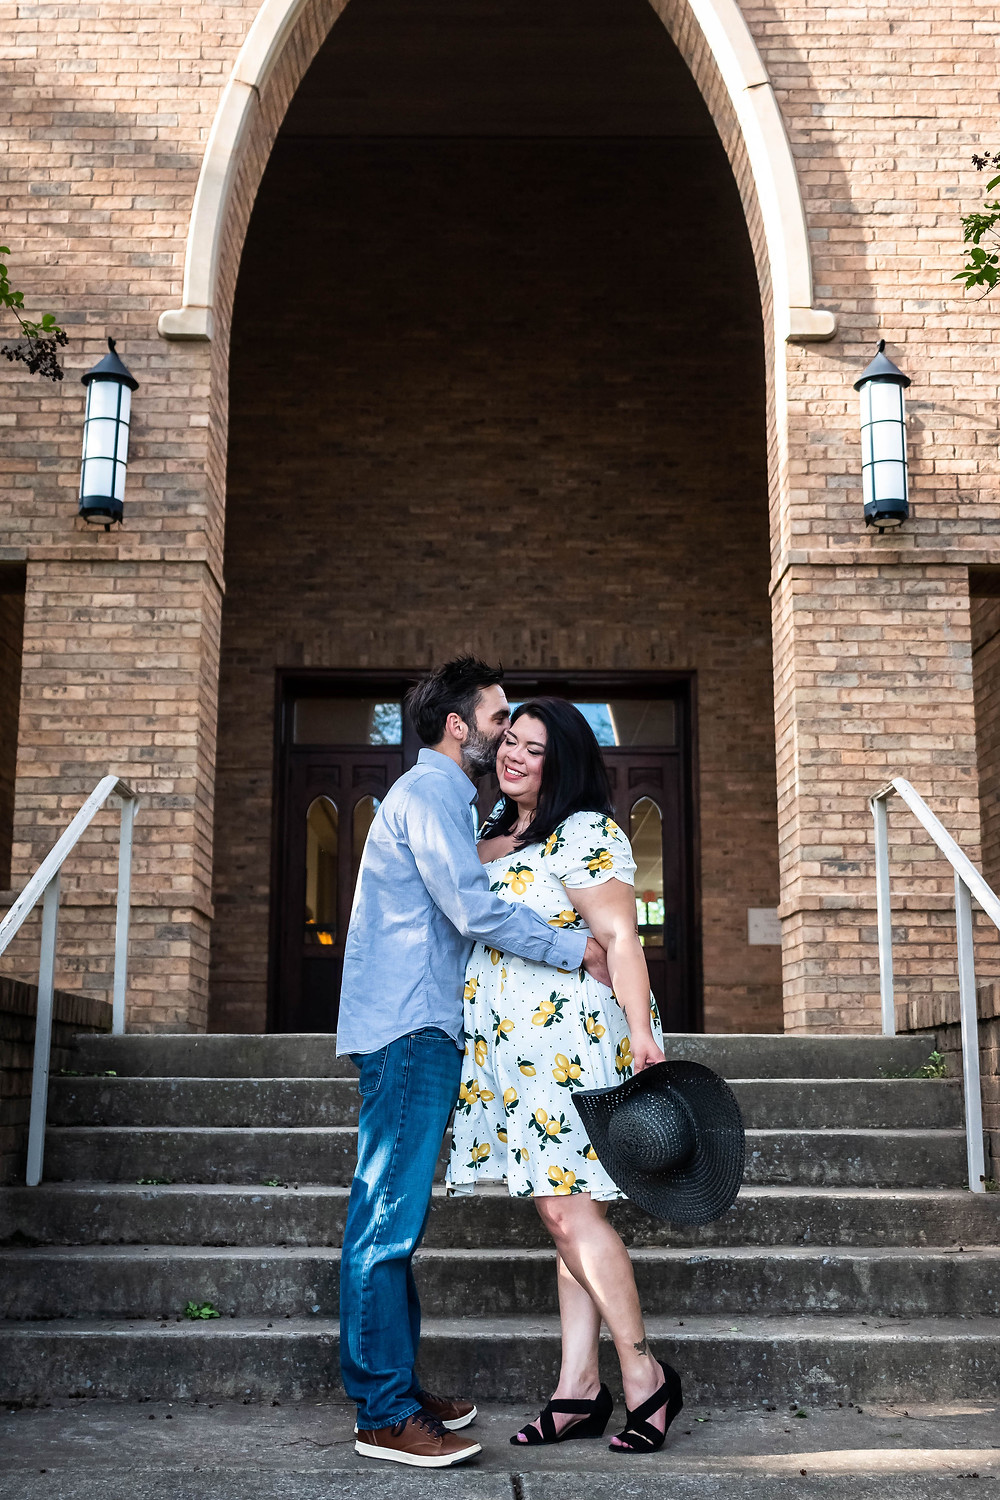 Cute couple share a kiss on the steps of historic church in downtown Murfreesboro